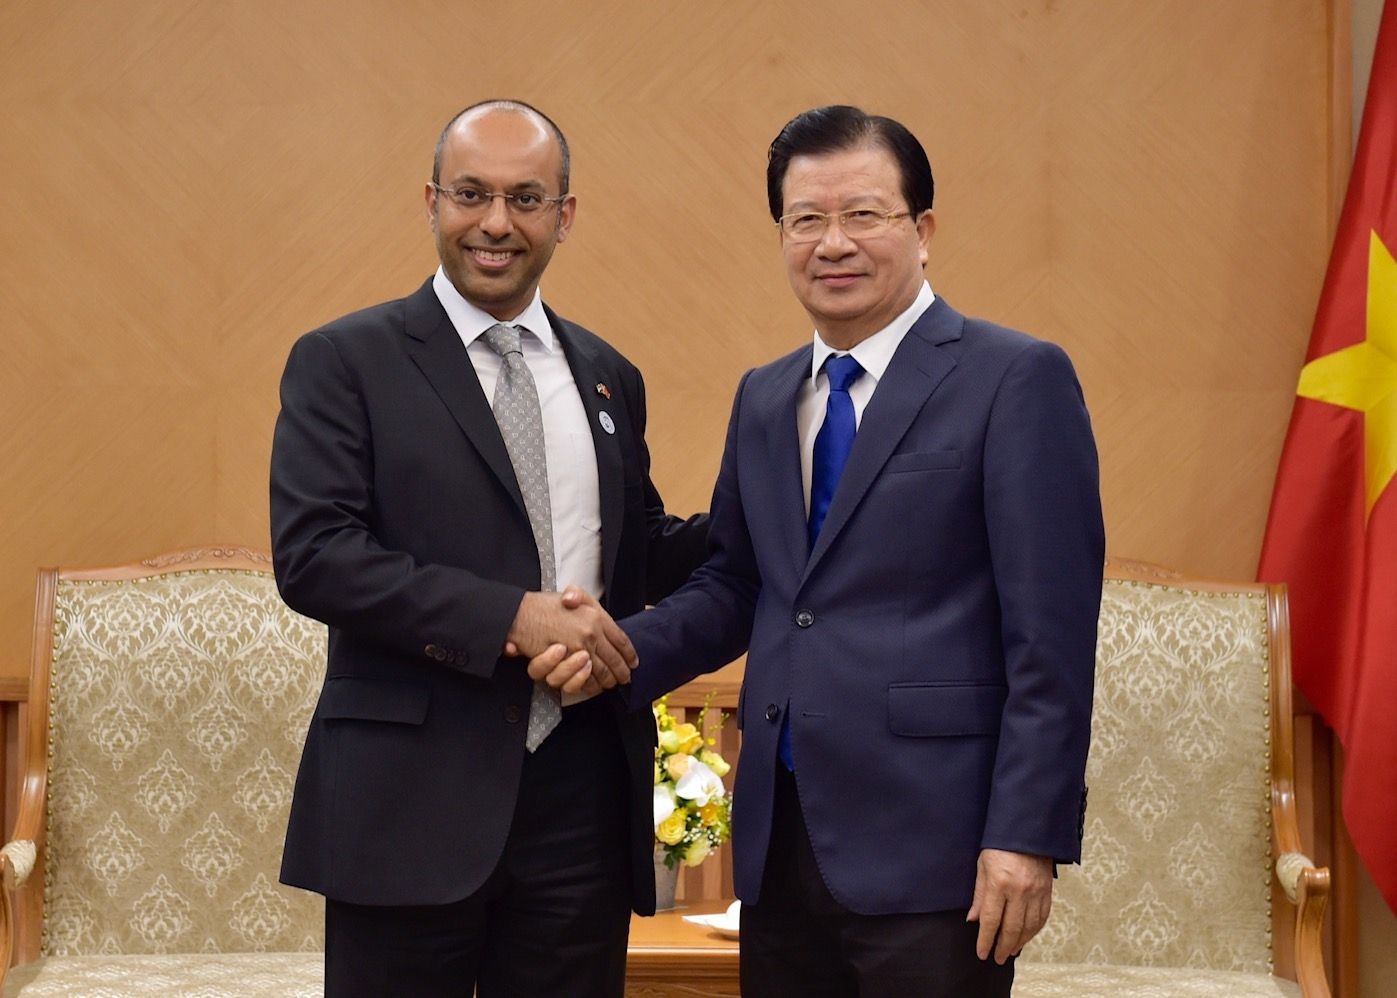 UAE firms encouraged to expand investment in Vietnam